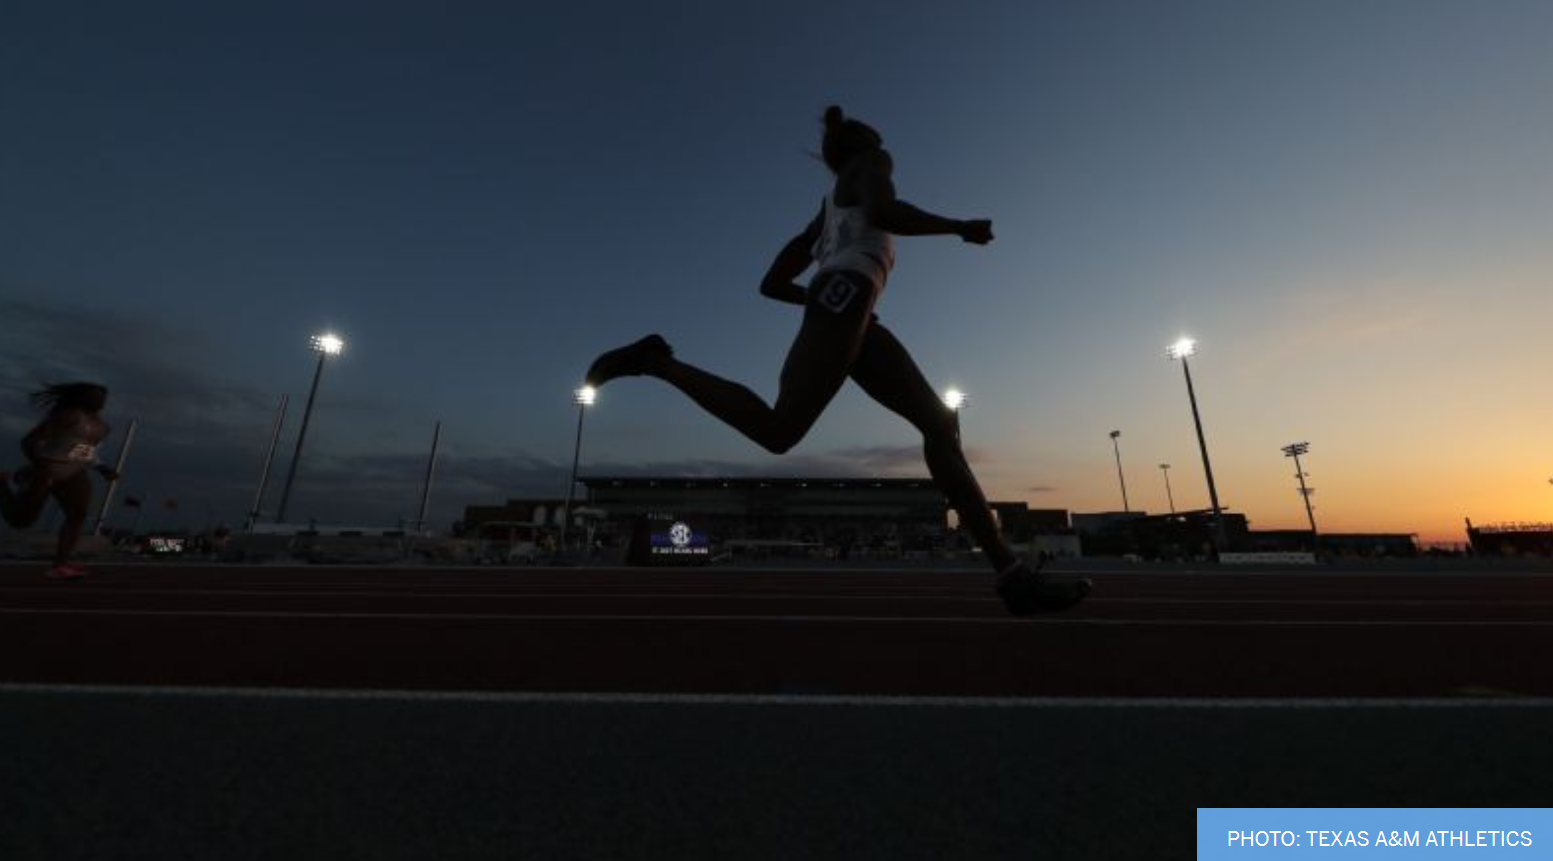 2021 SEC Outdoor Track & Field Scholar-Athletes of the Year